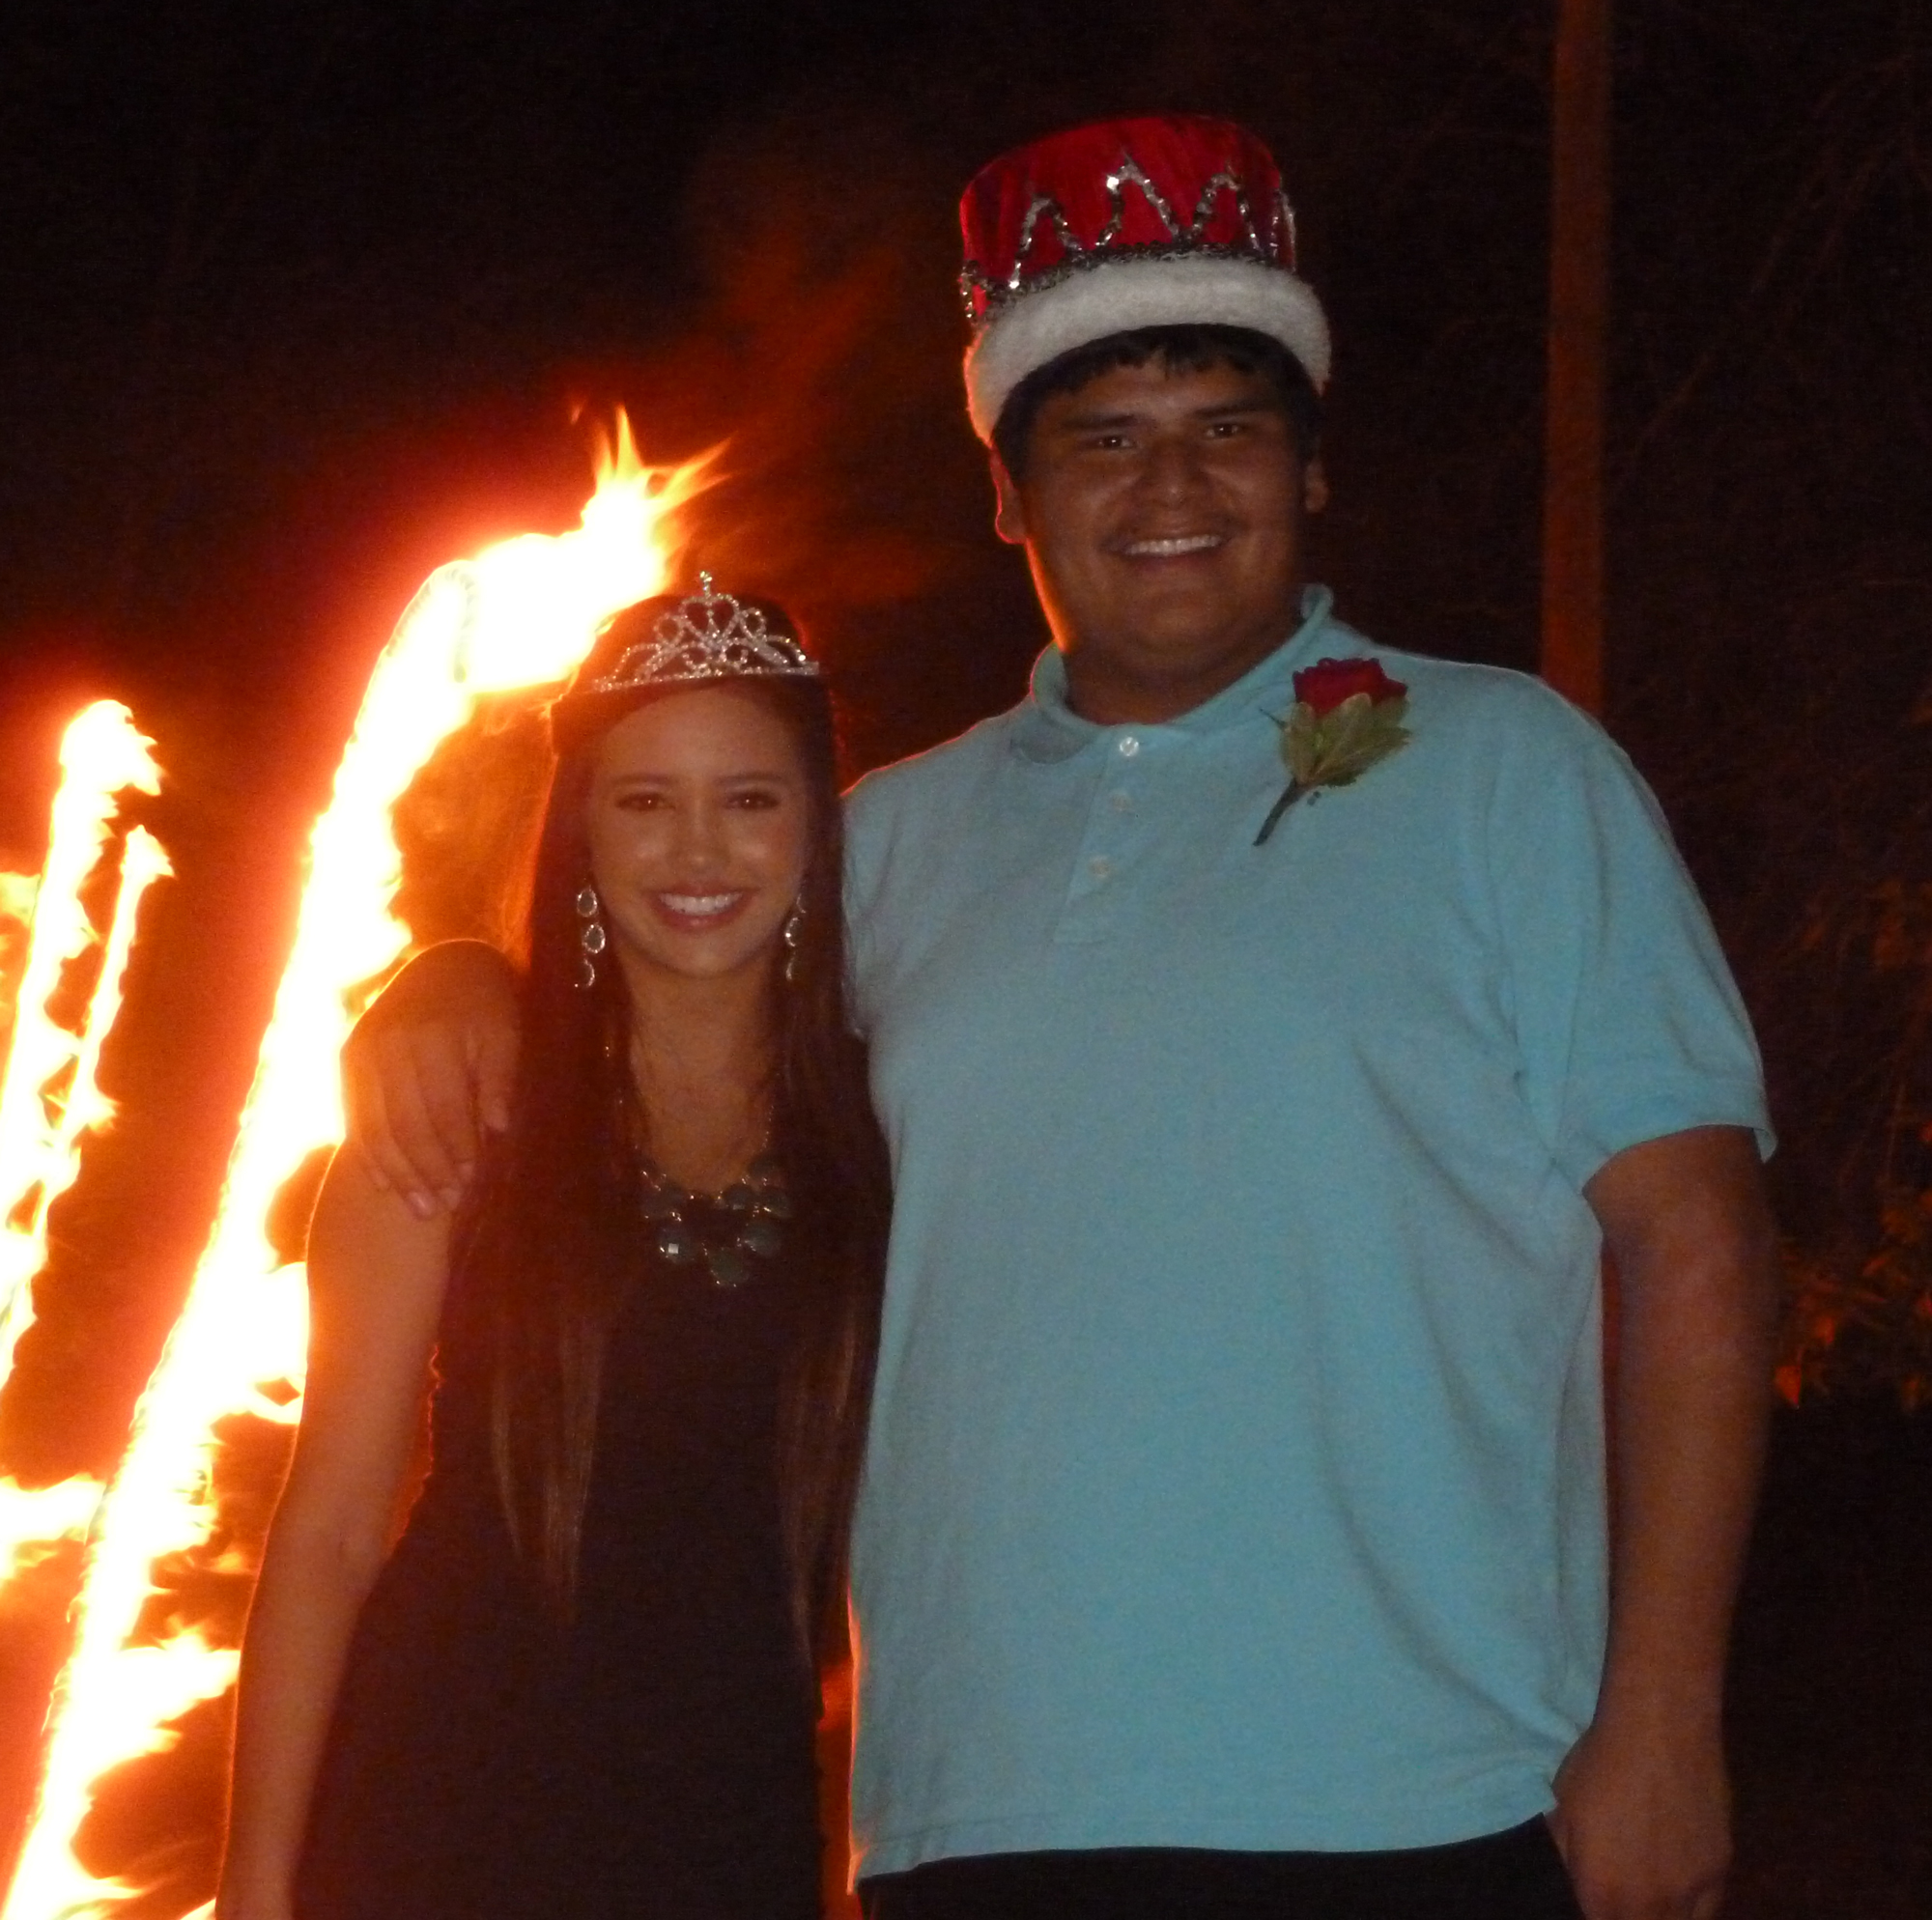 St. Joseph's high school student Cody is the Chamberlain High School Homecoming King for 2013.